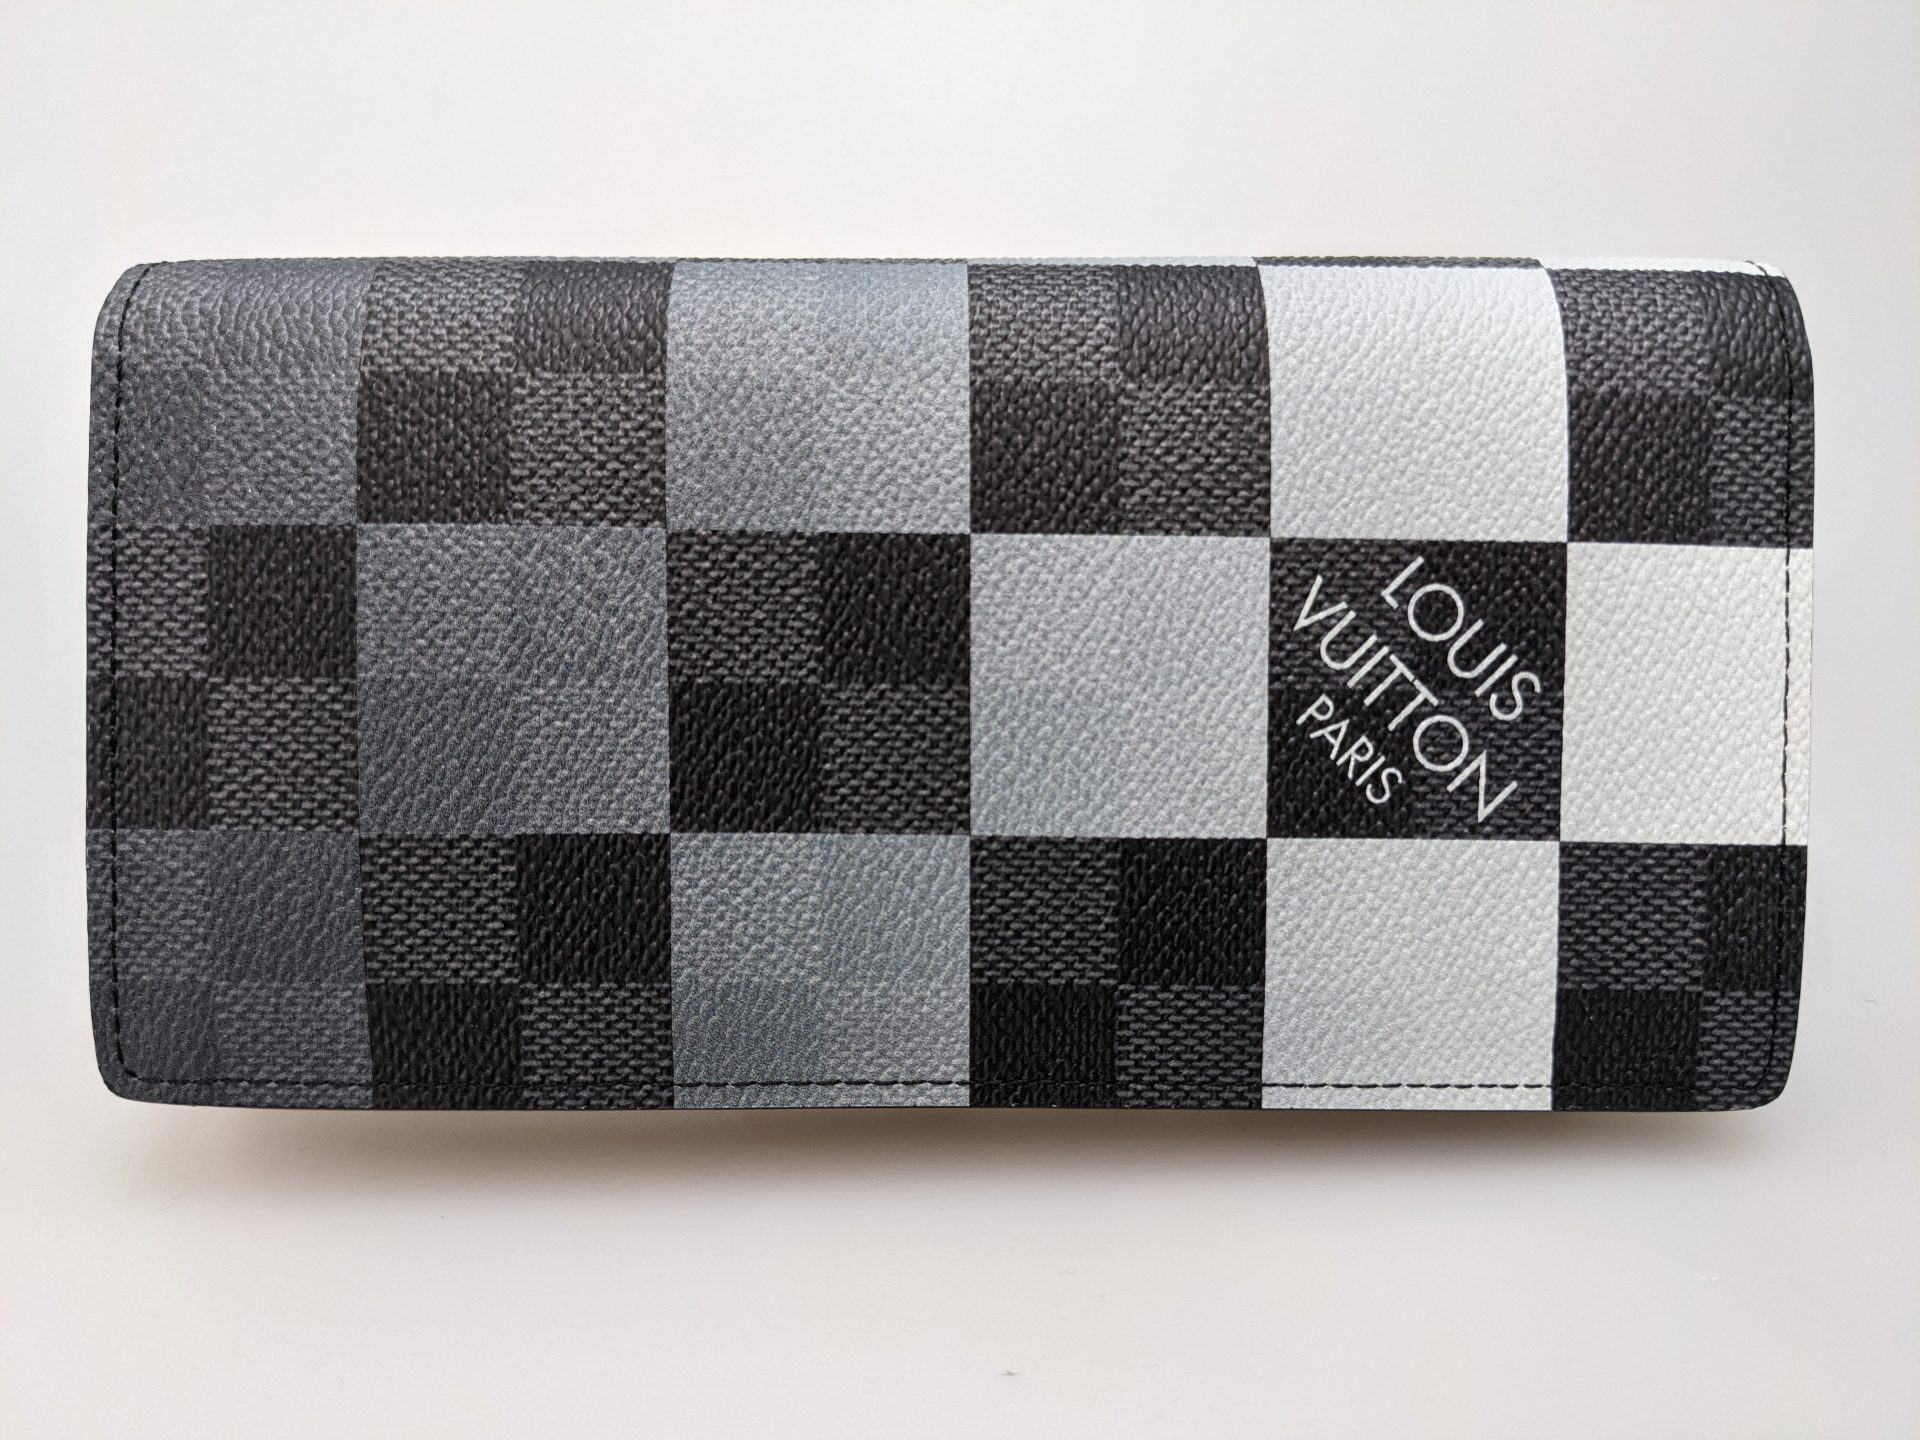 LOUISVUITTON.DAMIER.GRAPHITE.GIANT